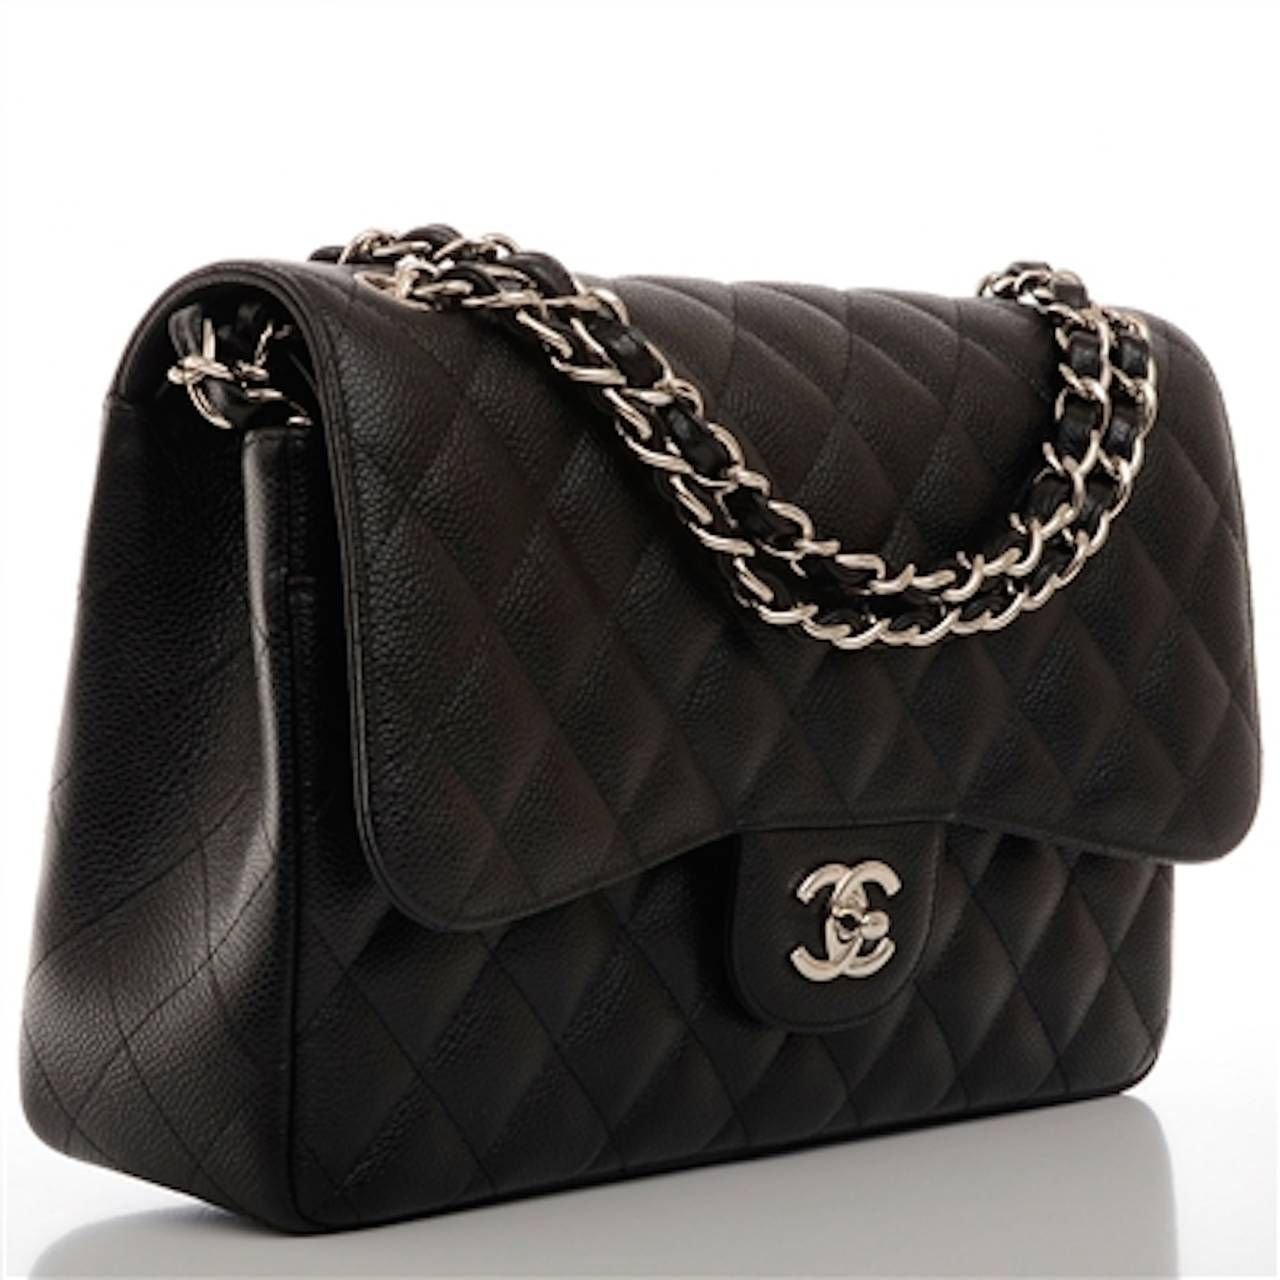 d535d80f317802 Chanel Black Quilted Caviar Jumbo Classic Double Flap Bag at 1stdibs ...